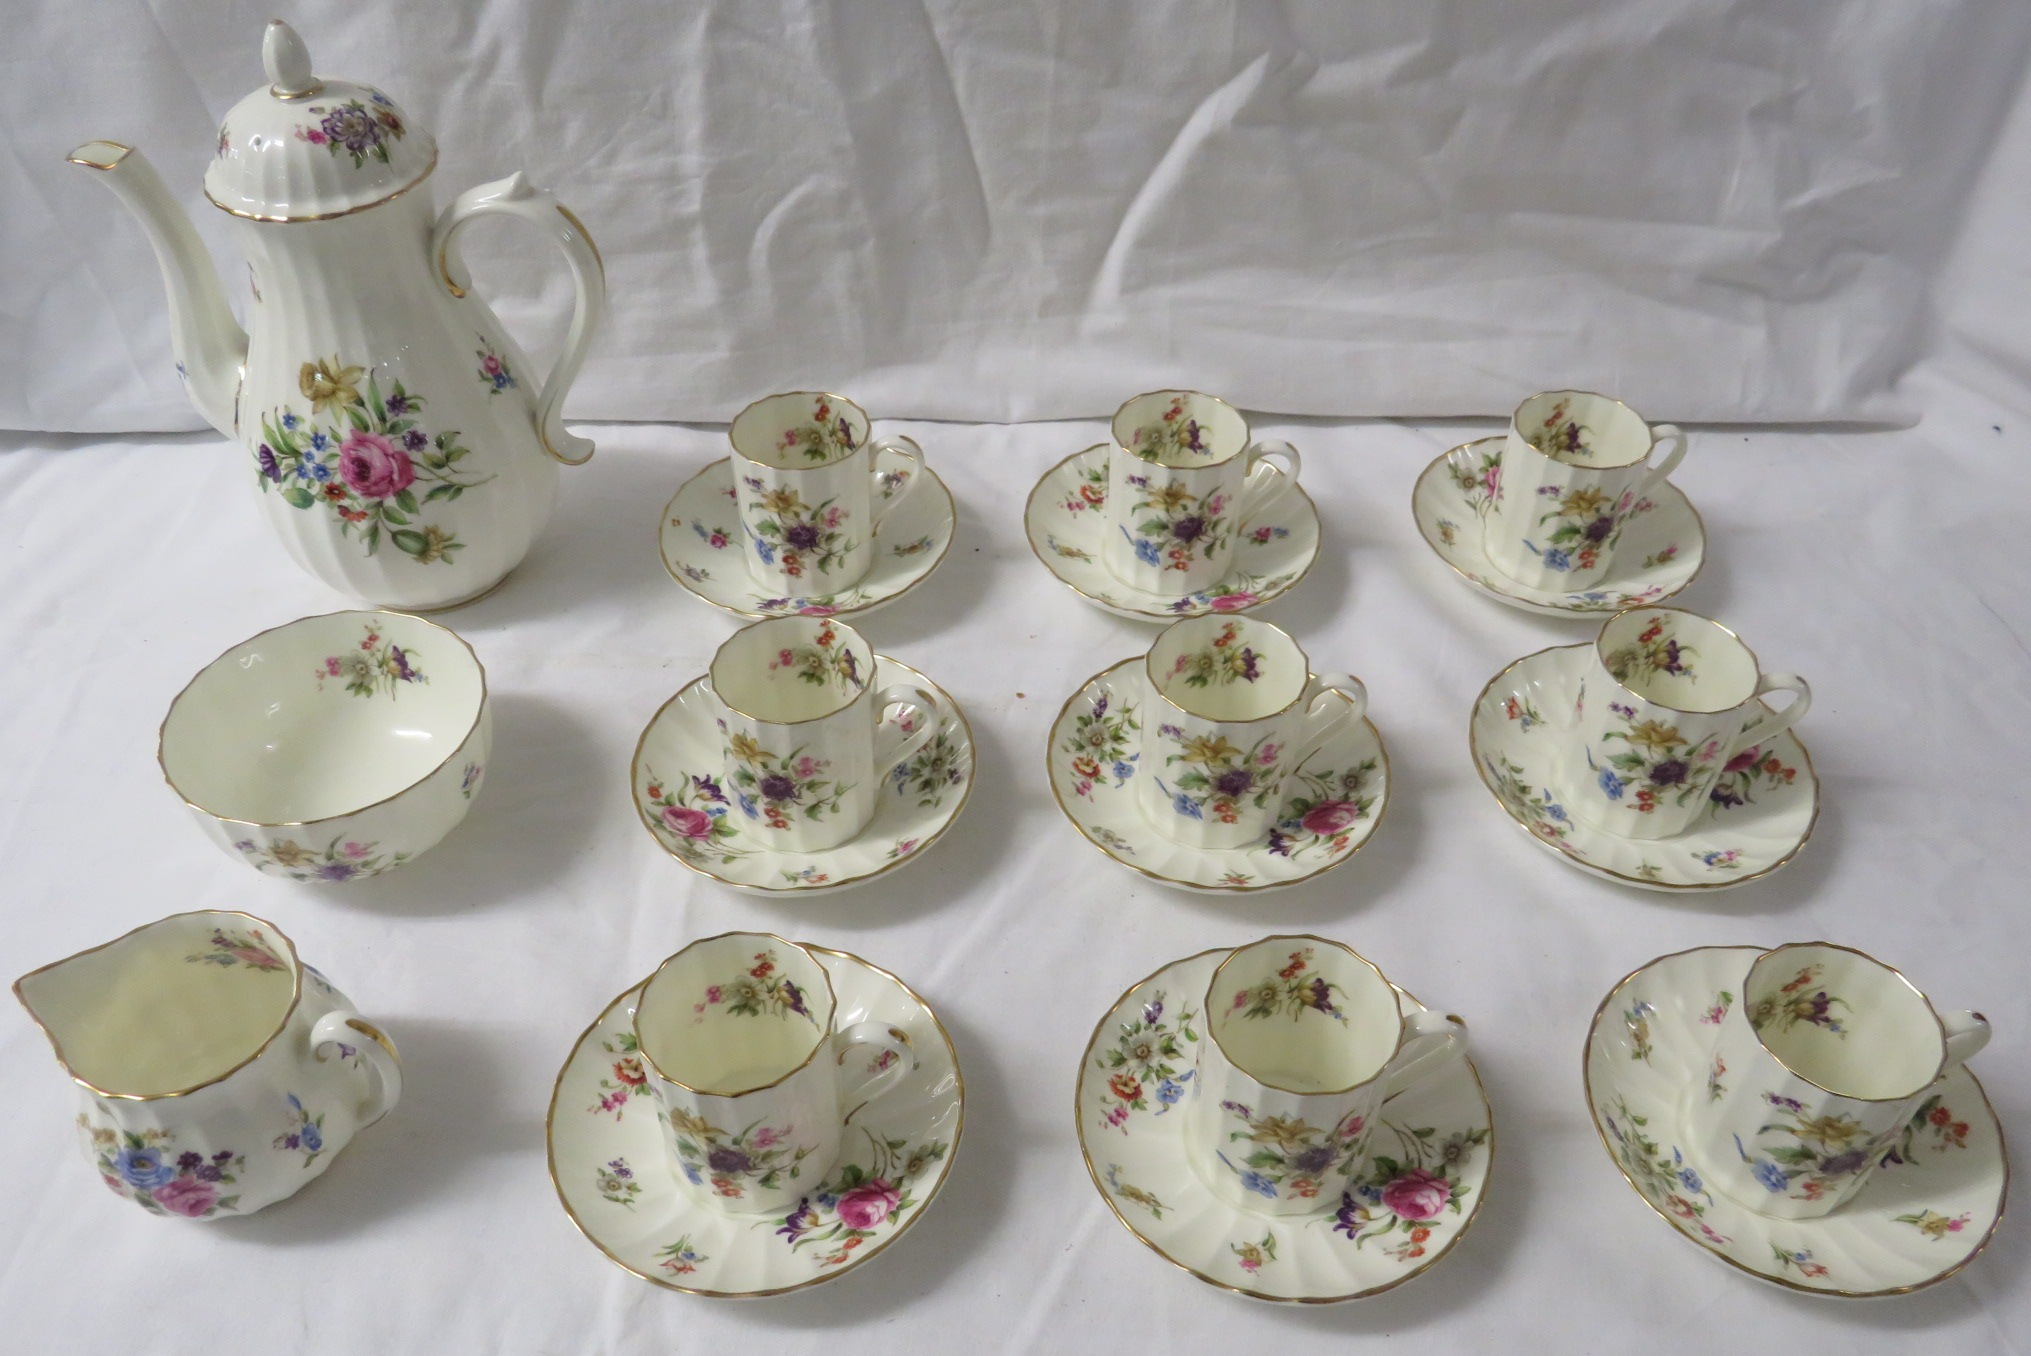 Lot 54 - Royal Worcester Roanoke nine setting fluted coffee service with coffee pot, sugar bowl and milk jug,